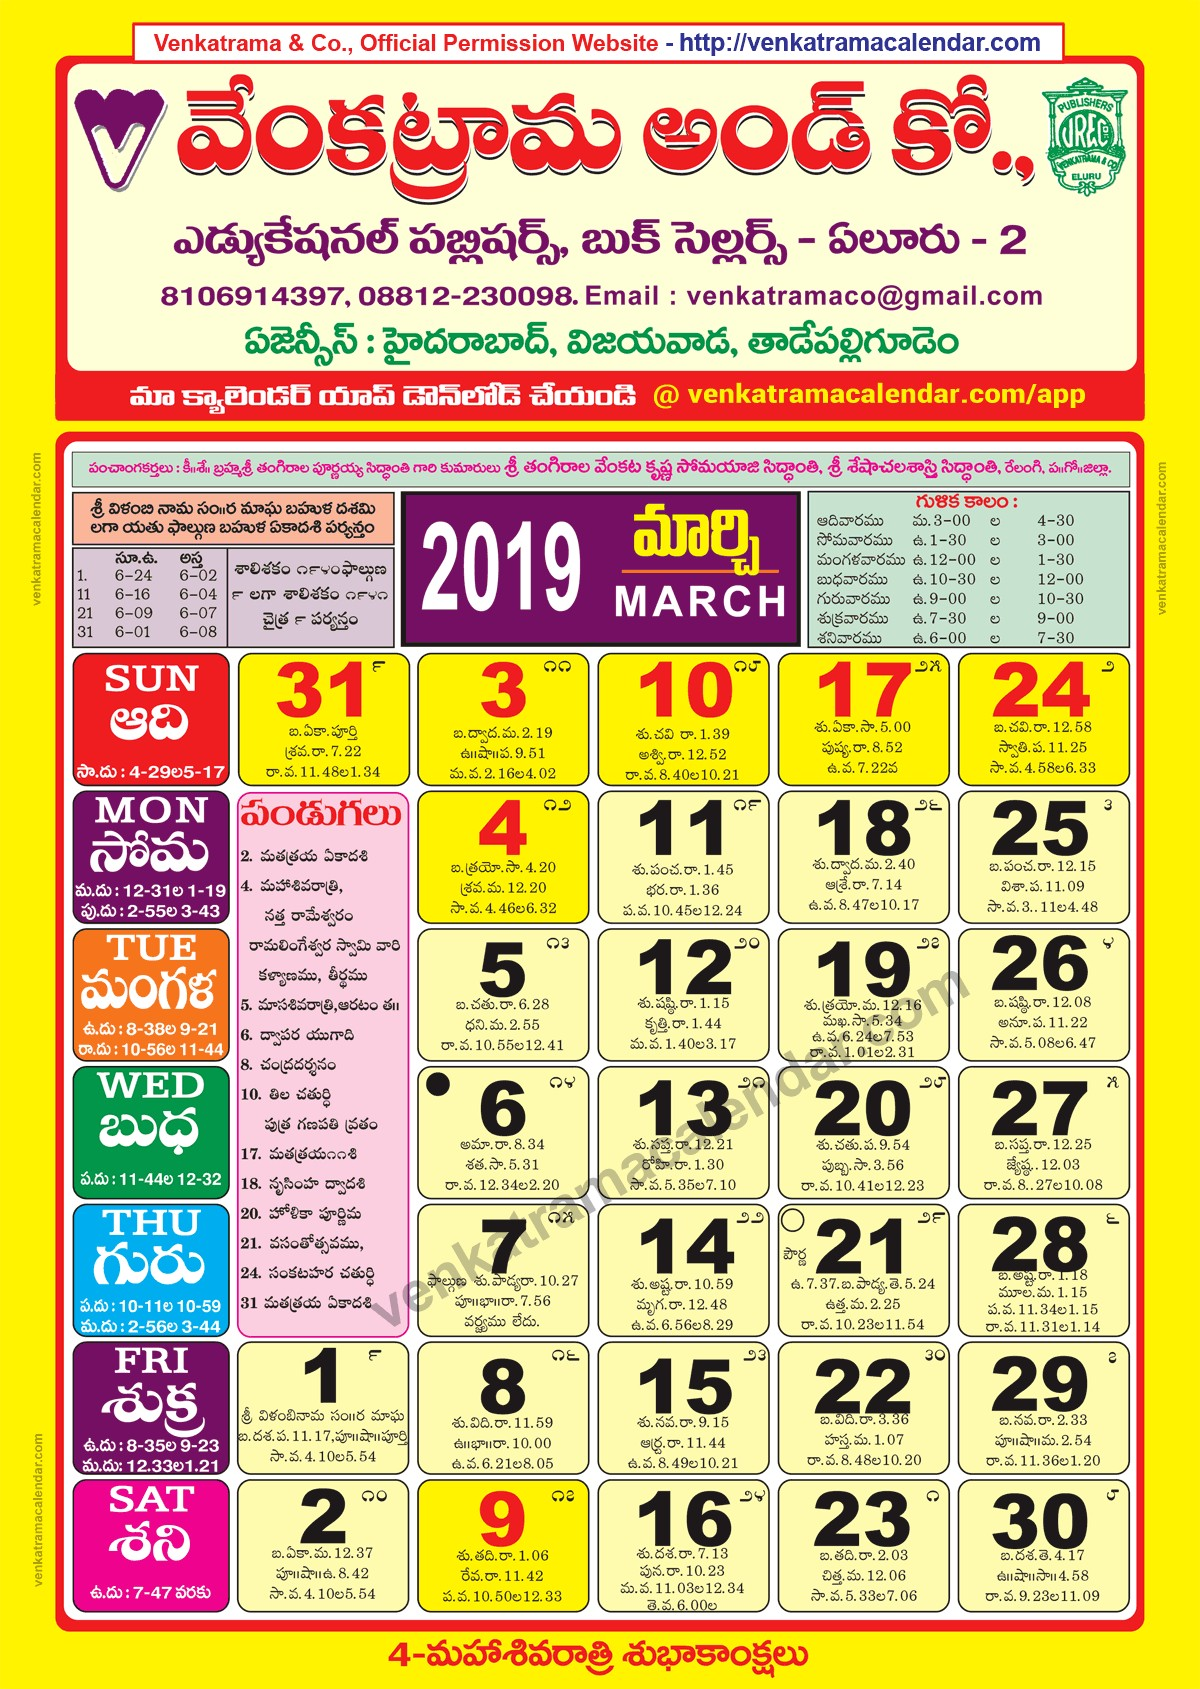 March Calendar 2019 Más Recientemente Liberado Venkatrama Co 2019 March Telugu Calendar Colour Of March Calendar 2019 Más Actual Odia Calendar 2019 with March Odishain